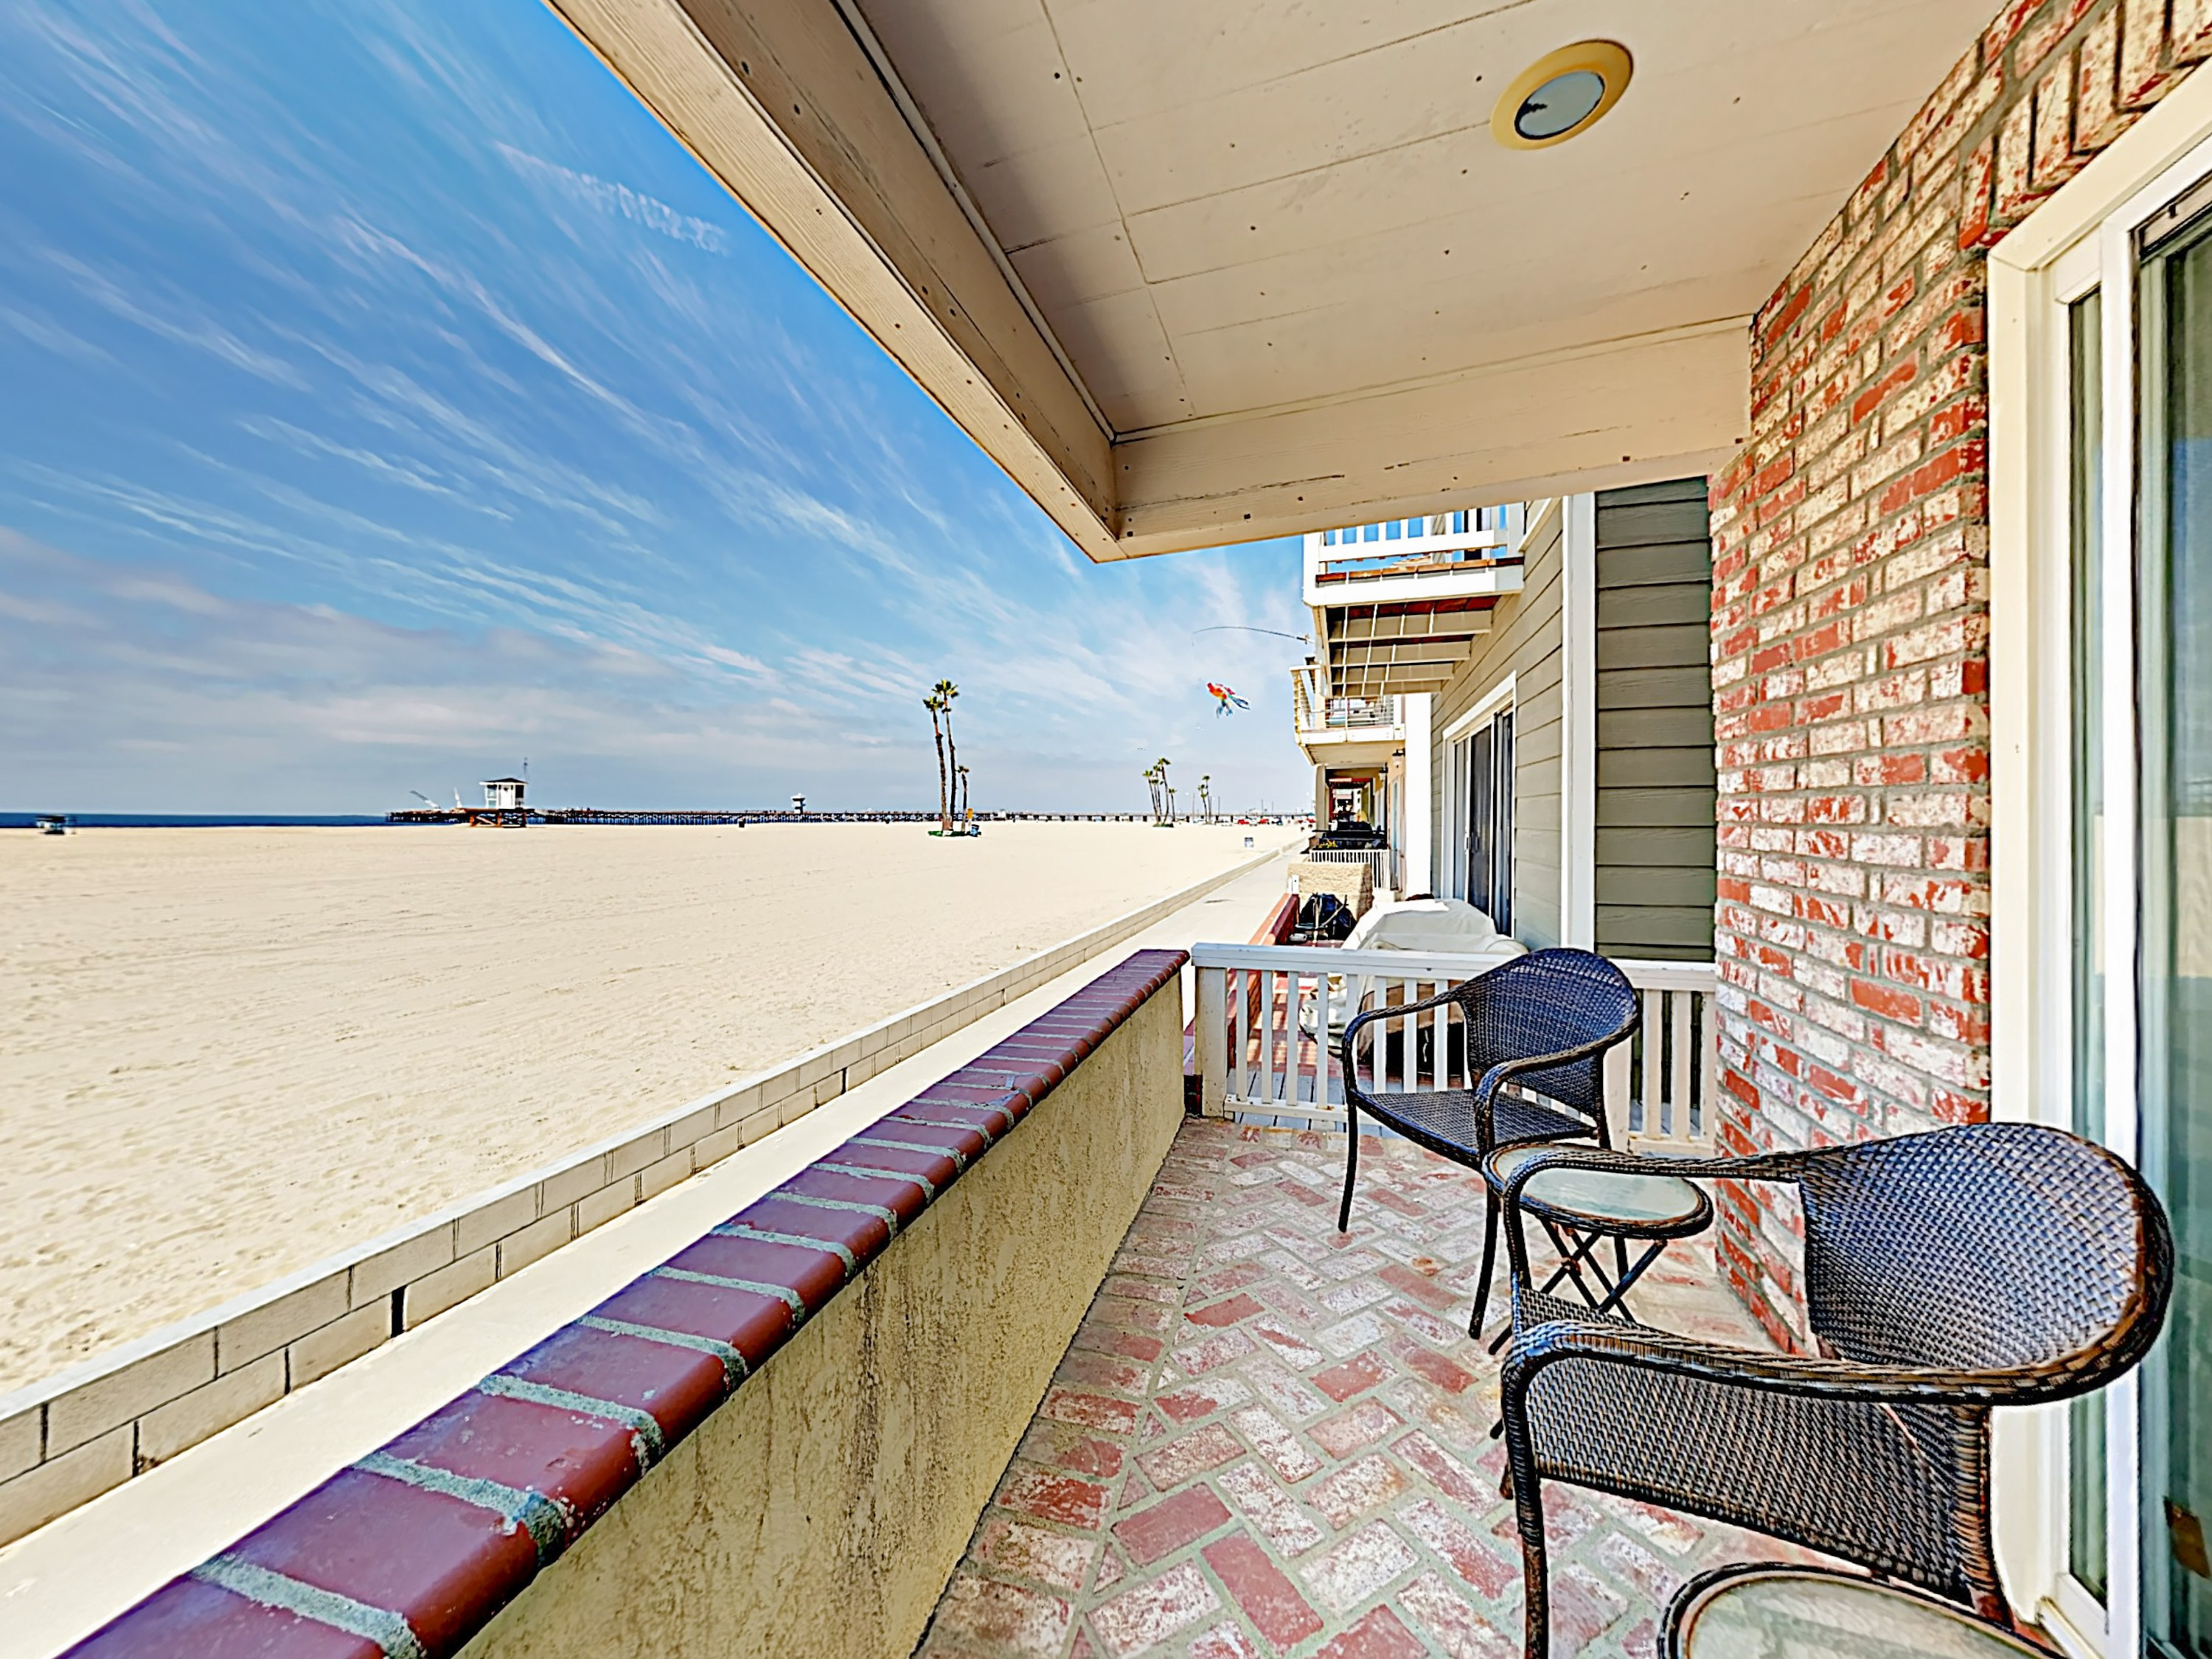 Seal Beach CA Vacation Rental Welcome to Seal